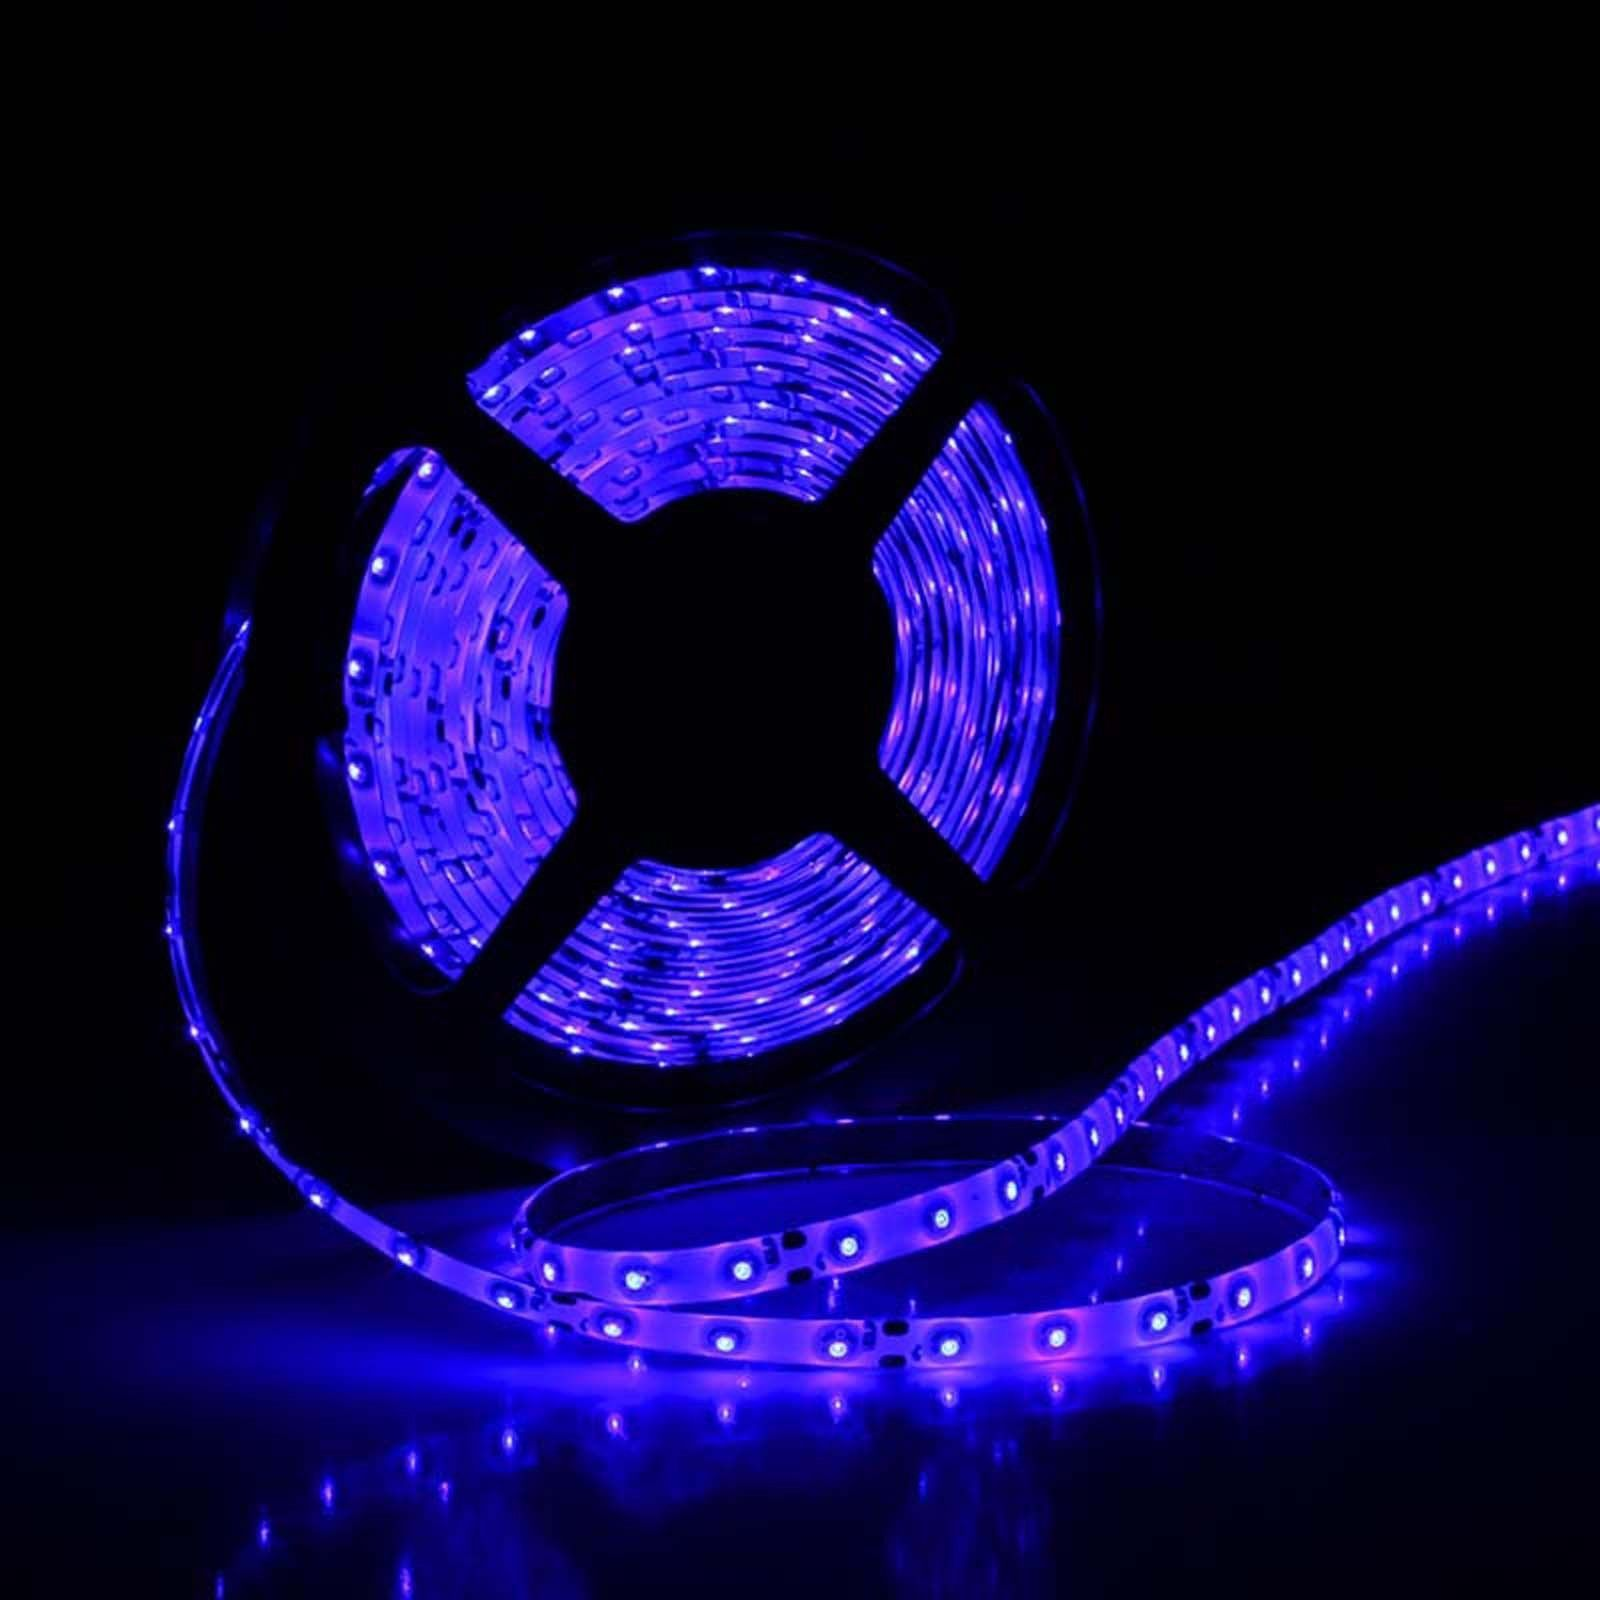 5m waterproof marine led strip lights blue flexible light strip for boats new ebay. Black Bedroom Furniture Sets. Home Design Ideas